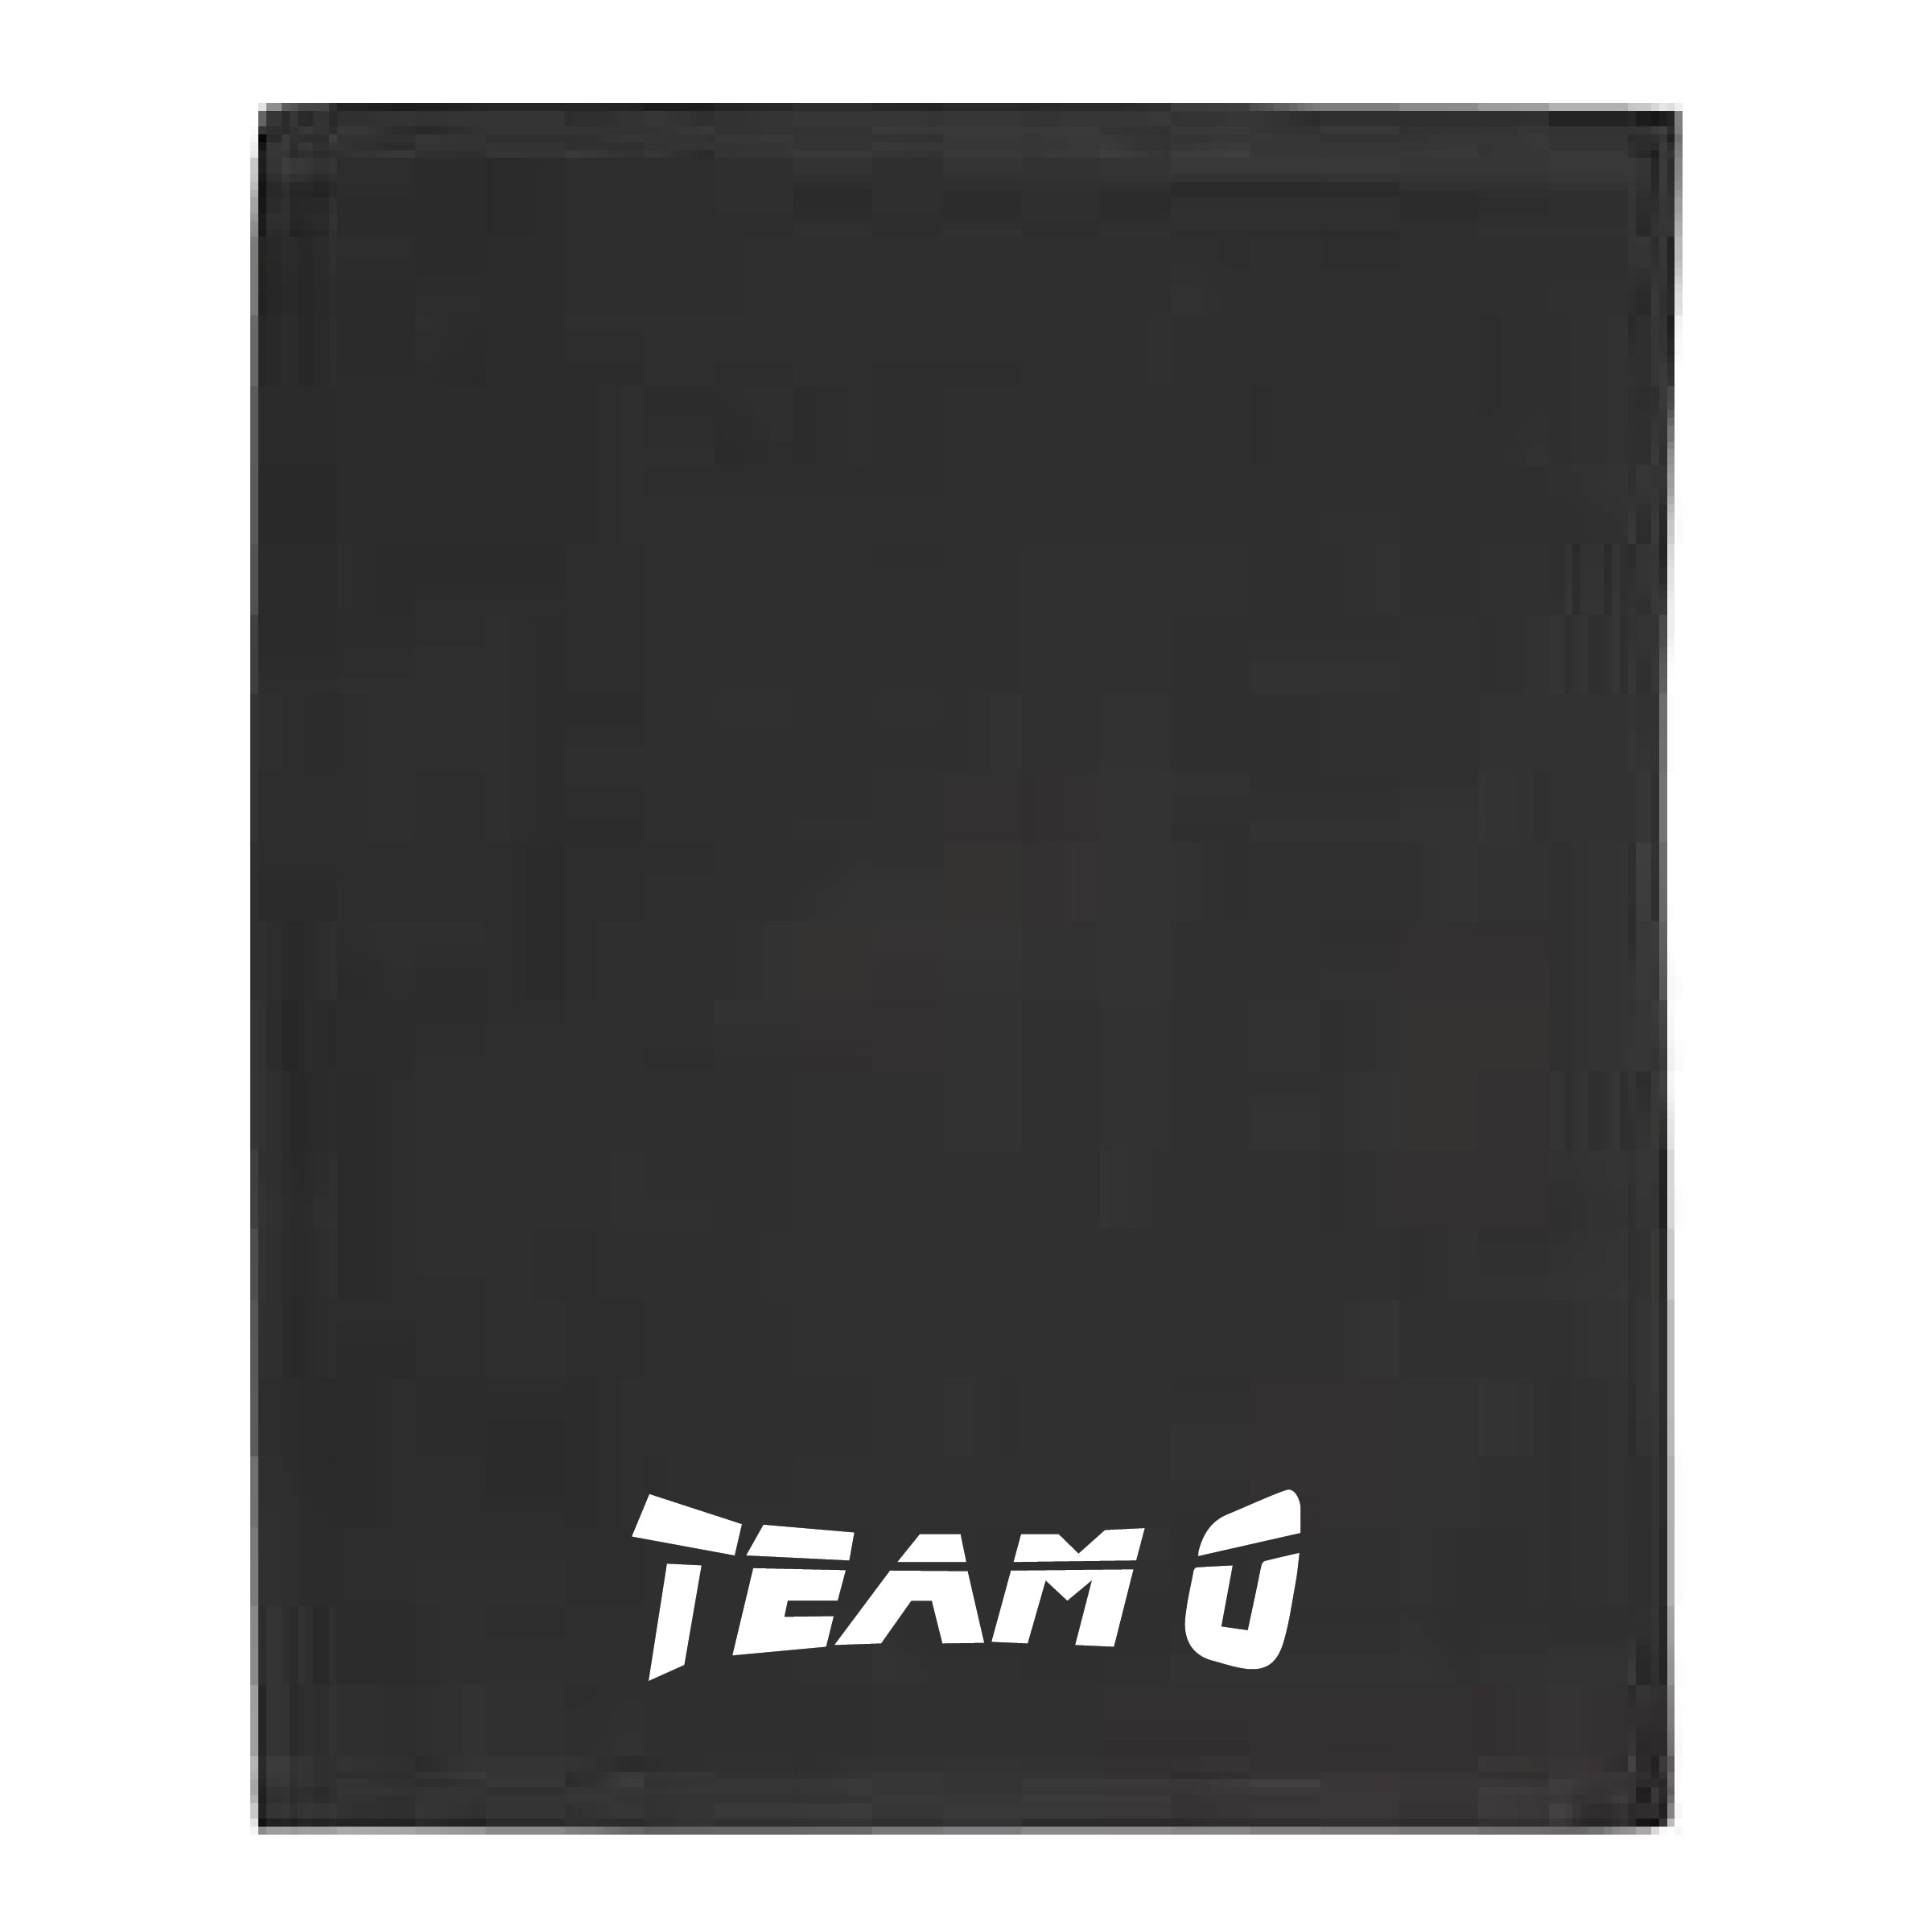 Team O Gym Towel 15 x 18